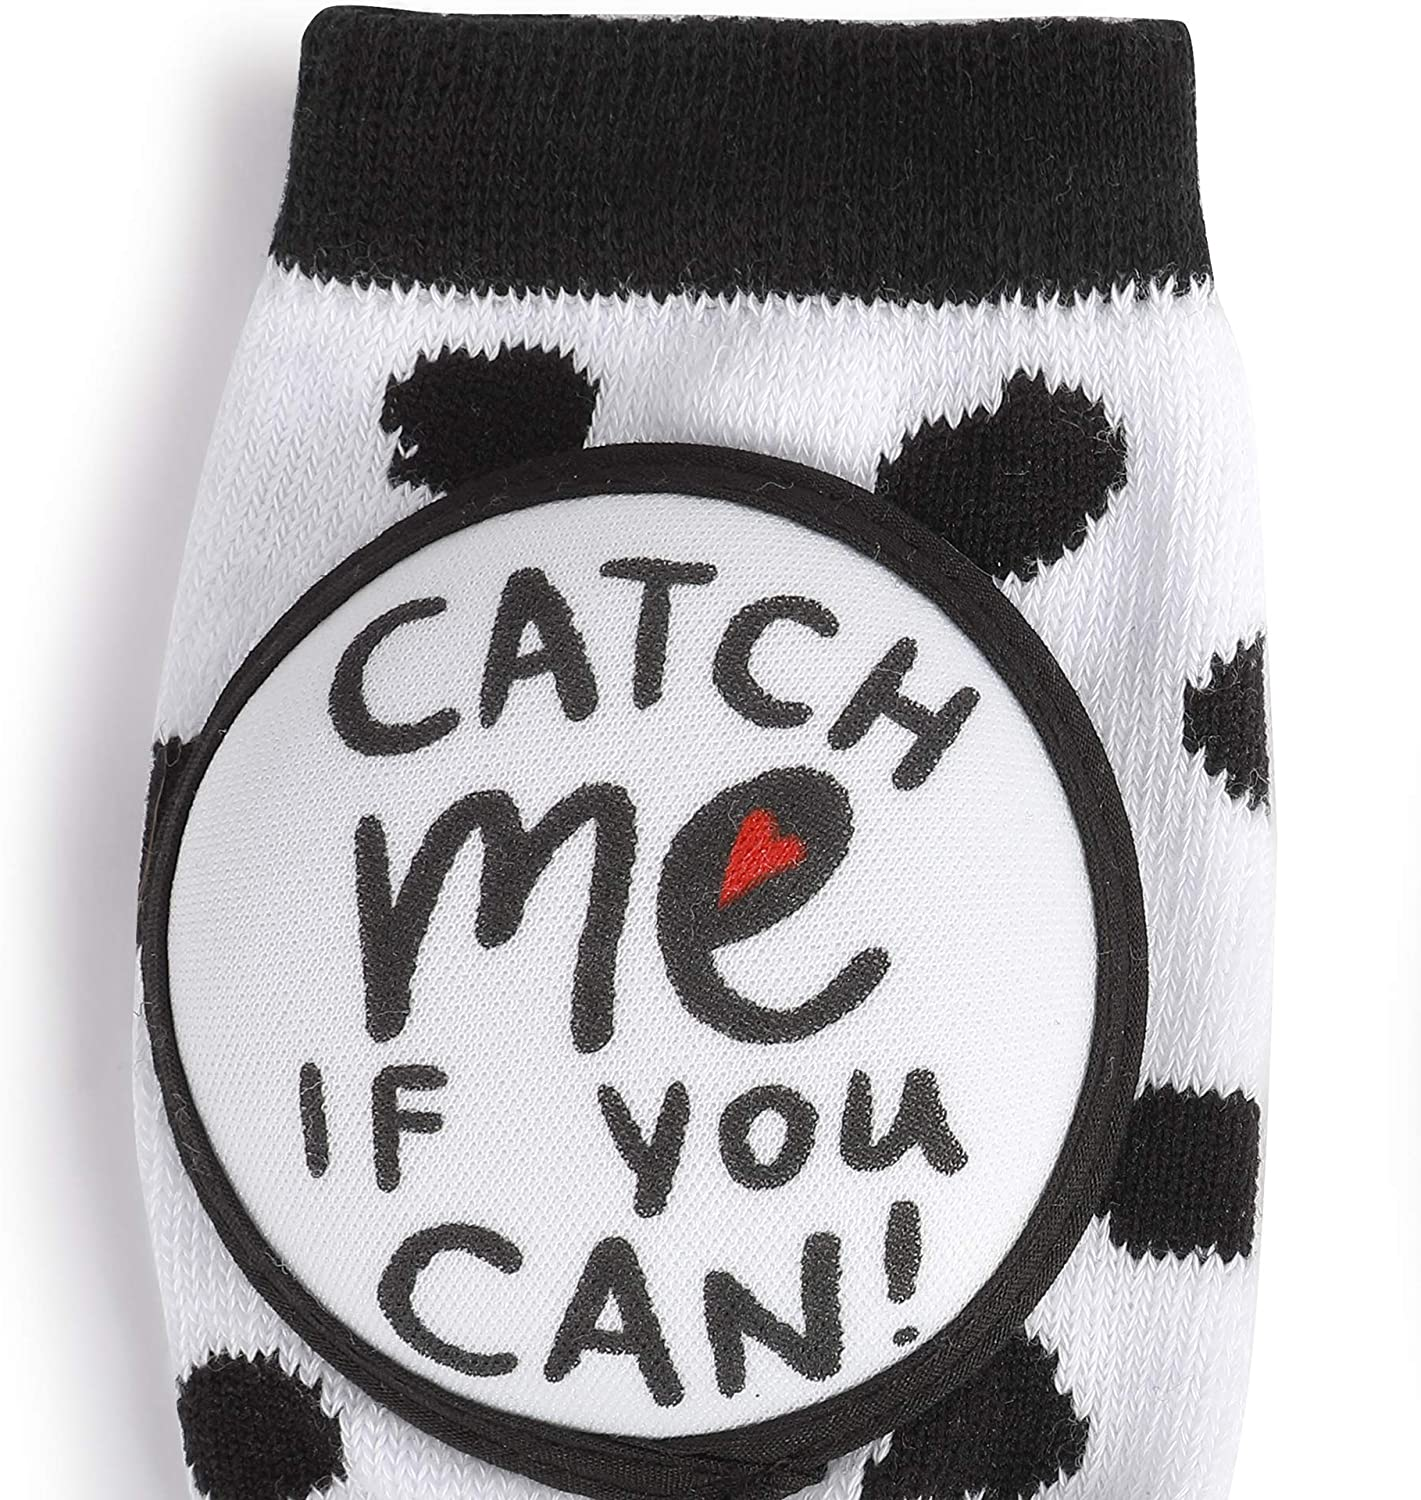 Catch Me If You Can Dalmatian Spotted One Size Fits Most Cotton Infant Kneezies